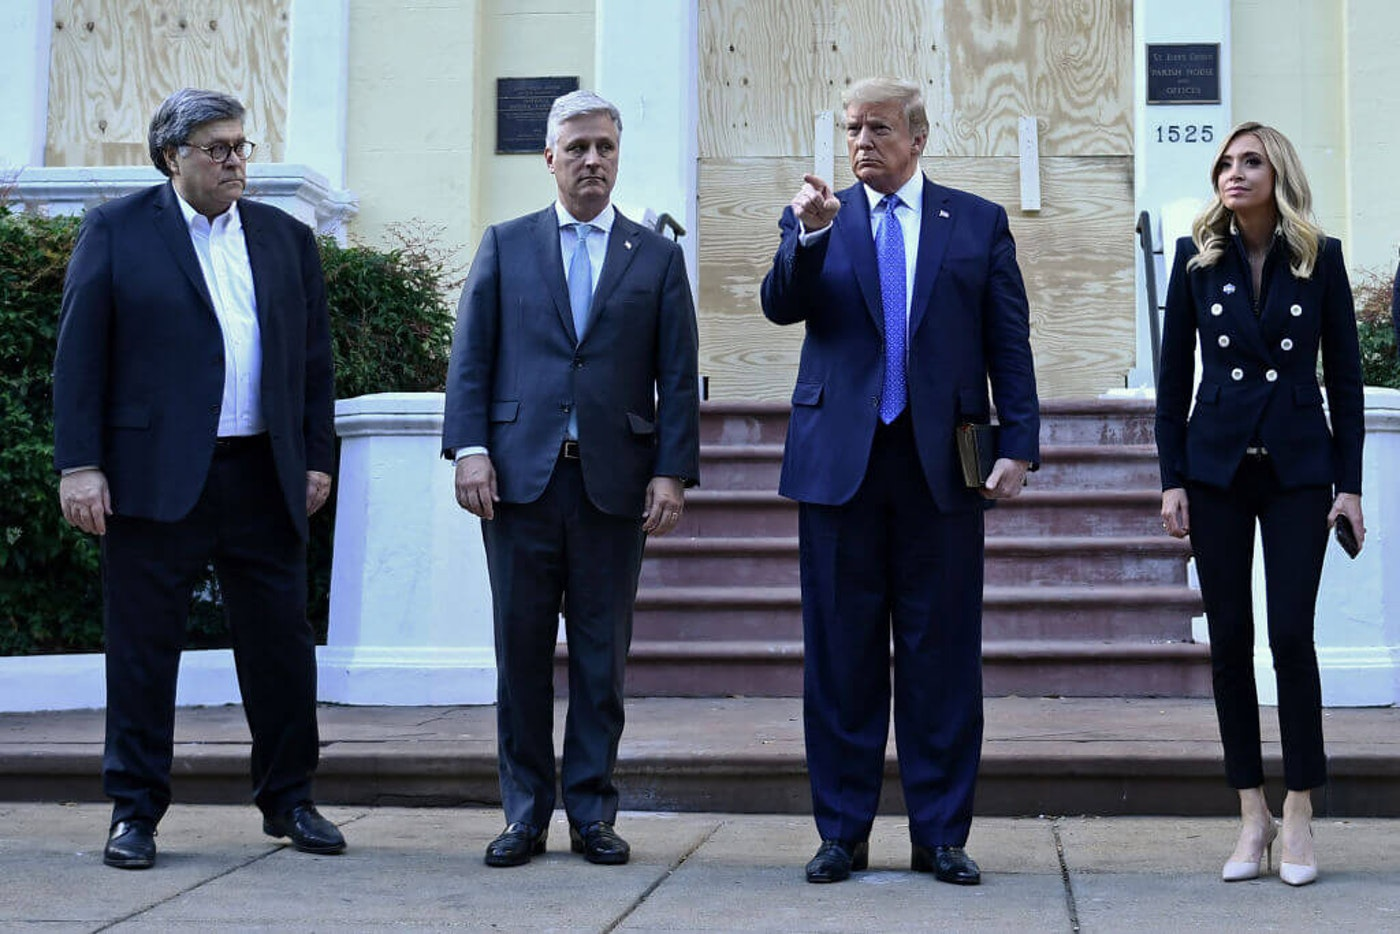 US President Donald Trump holds up a Bible as he gestures, alongside US Attorney General William Barr (L), White House national security adviser Robert O'Brien (2nd-L) and White House press secretary Kayleigh McEnany, outside of St John's Episcopal church across Lafayette Park in Washington, DC on June 1, 2020. (Photo by BRENDAN SMIALOWSKI/AFP via Getty Images)